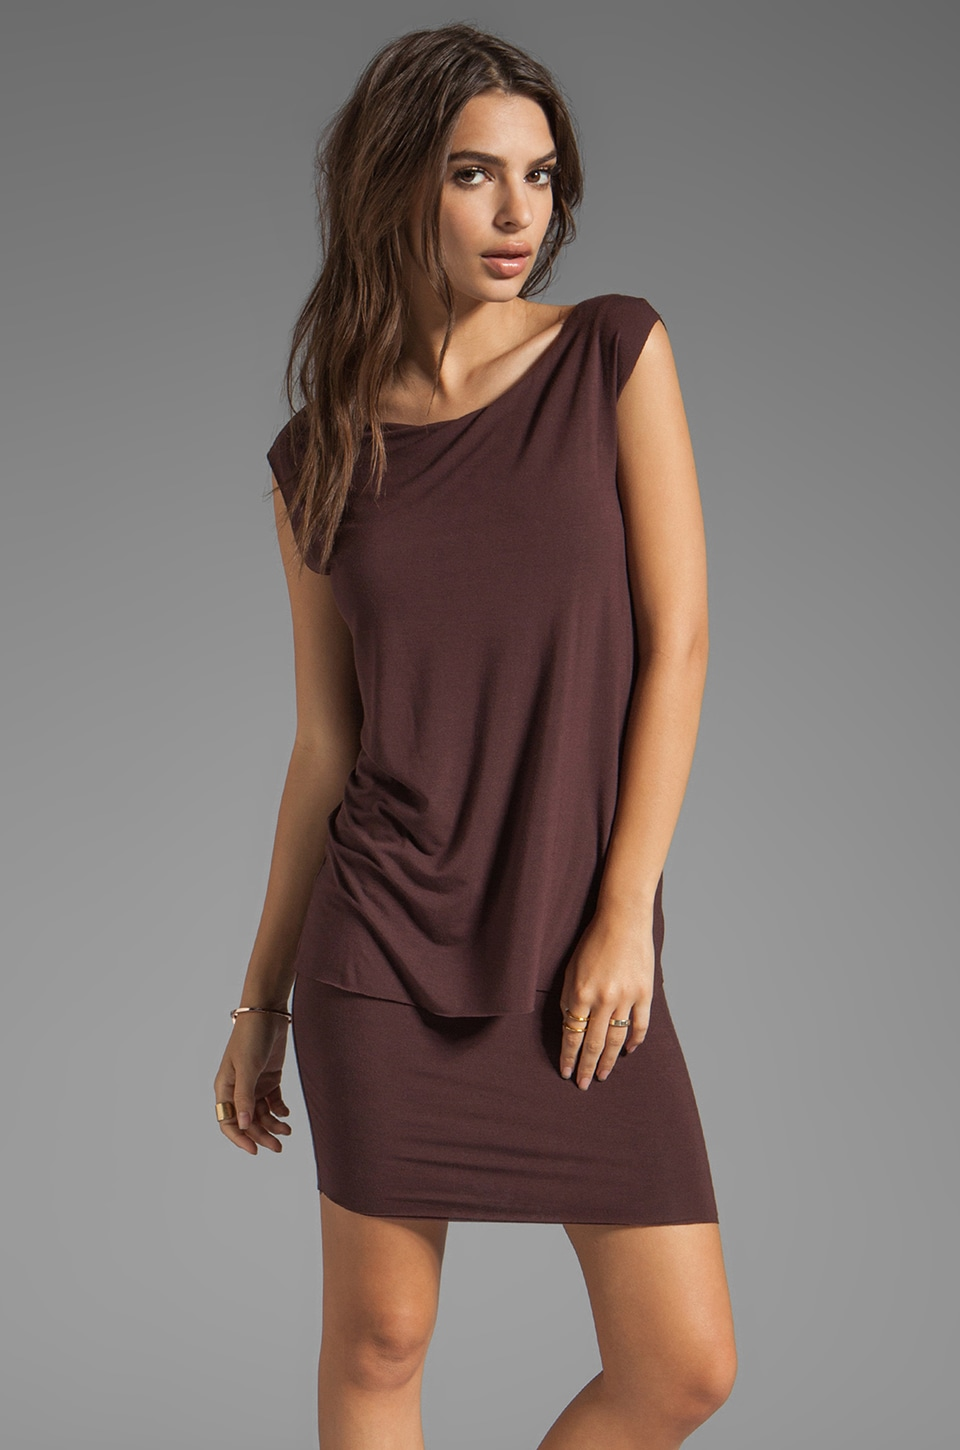 Bailey 44 Coriander Dress in Fig